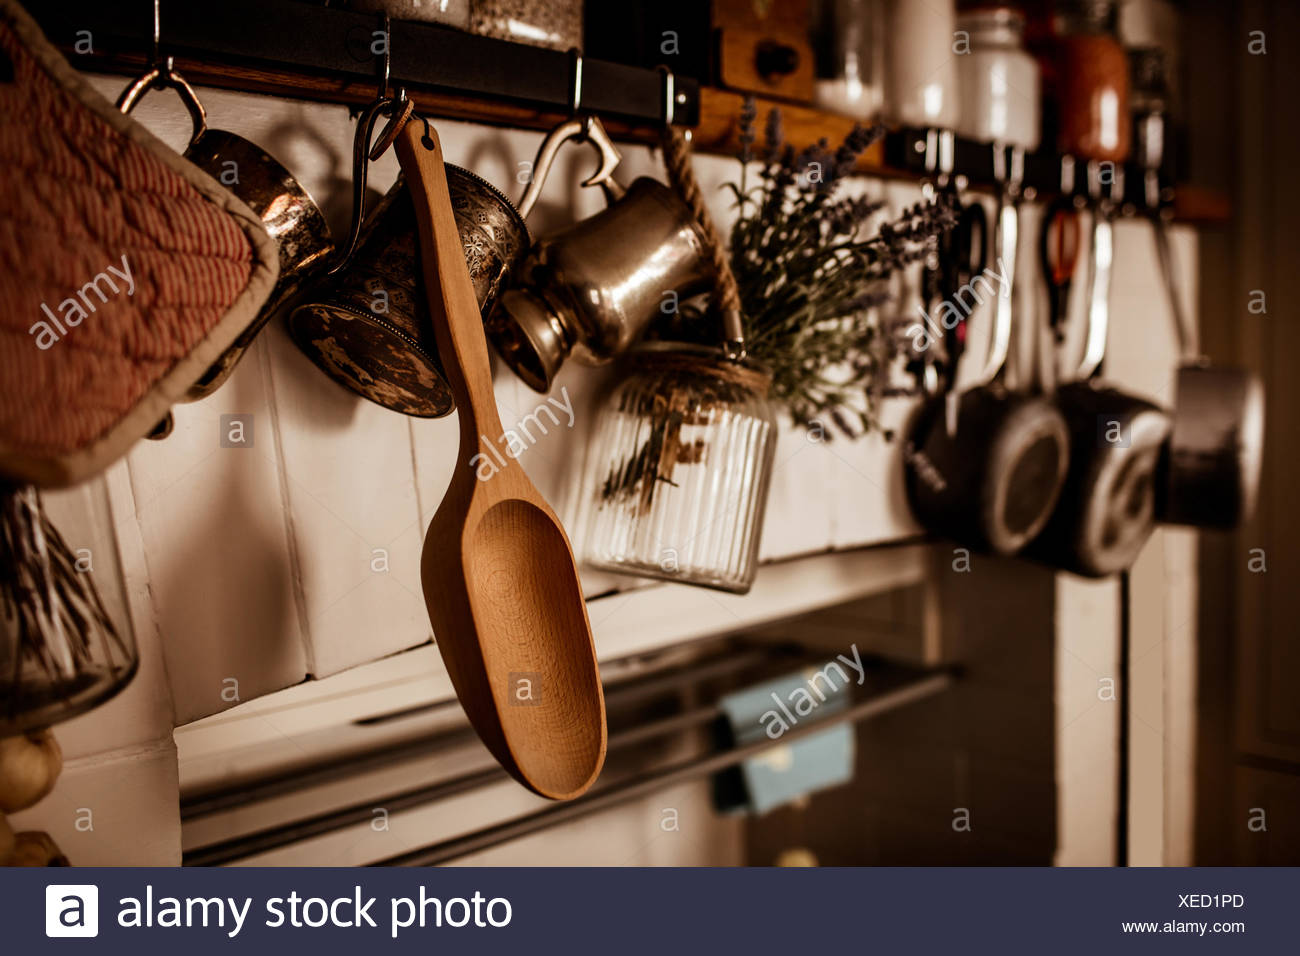 Kitchen utensils hanging on wall - Stock Image